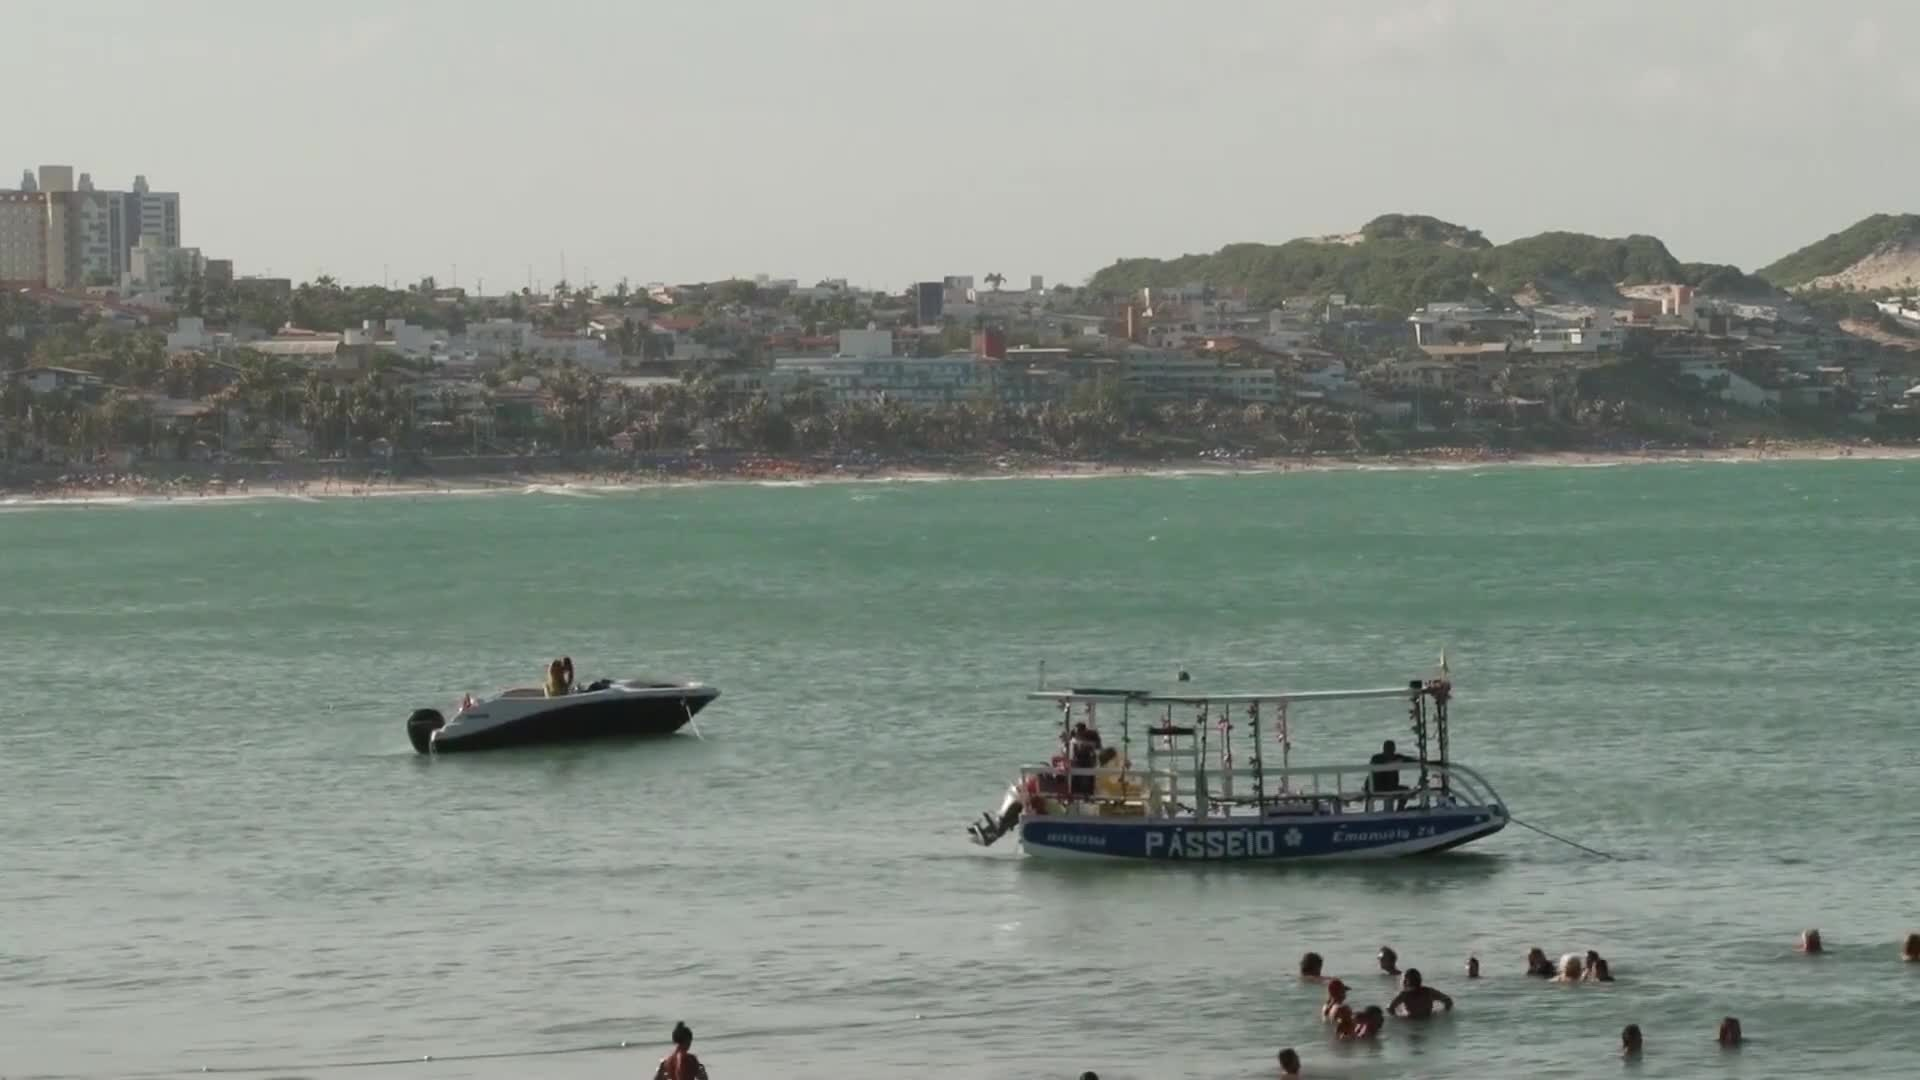 Video of boats and people in the sea